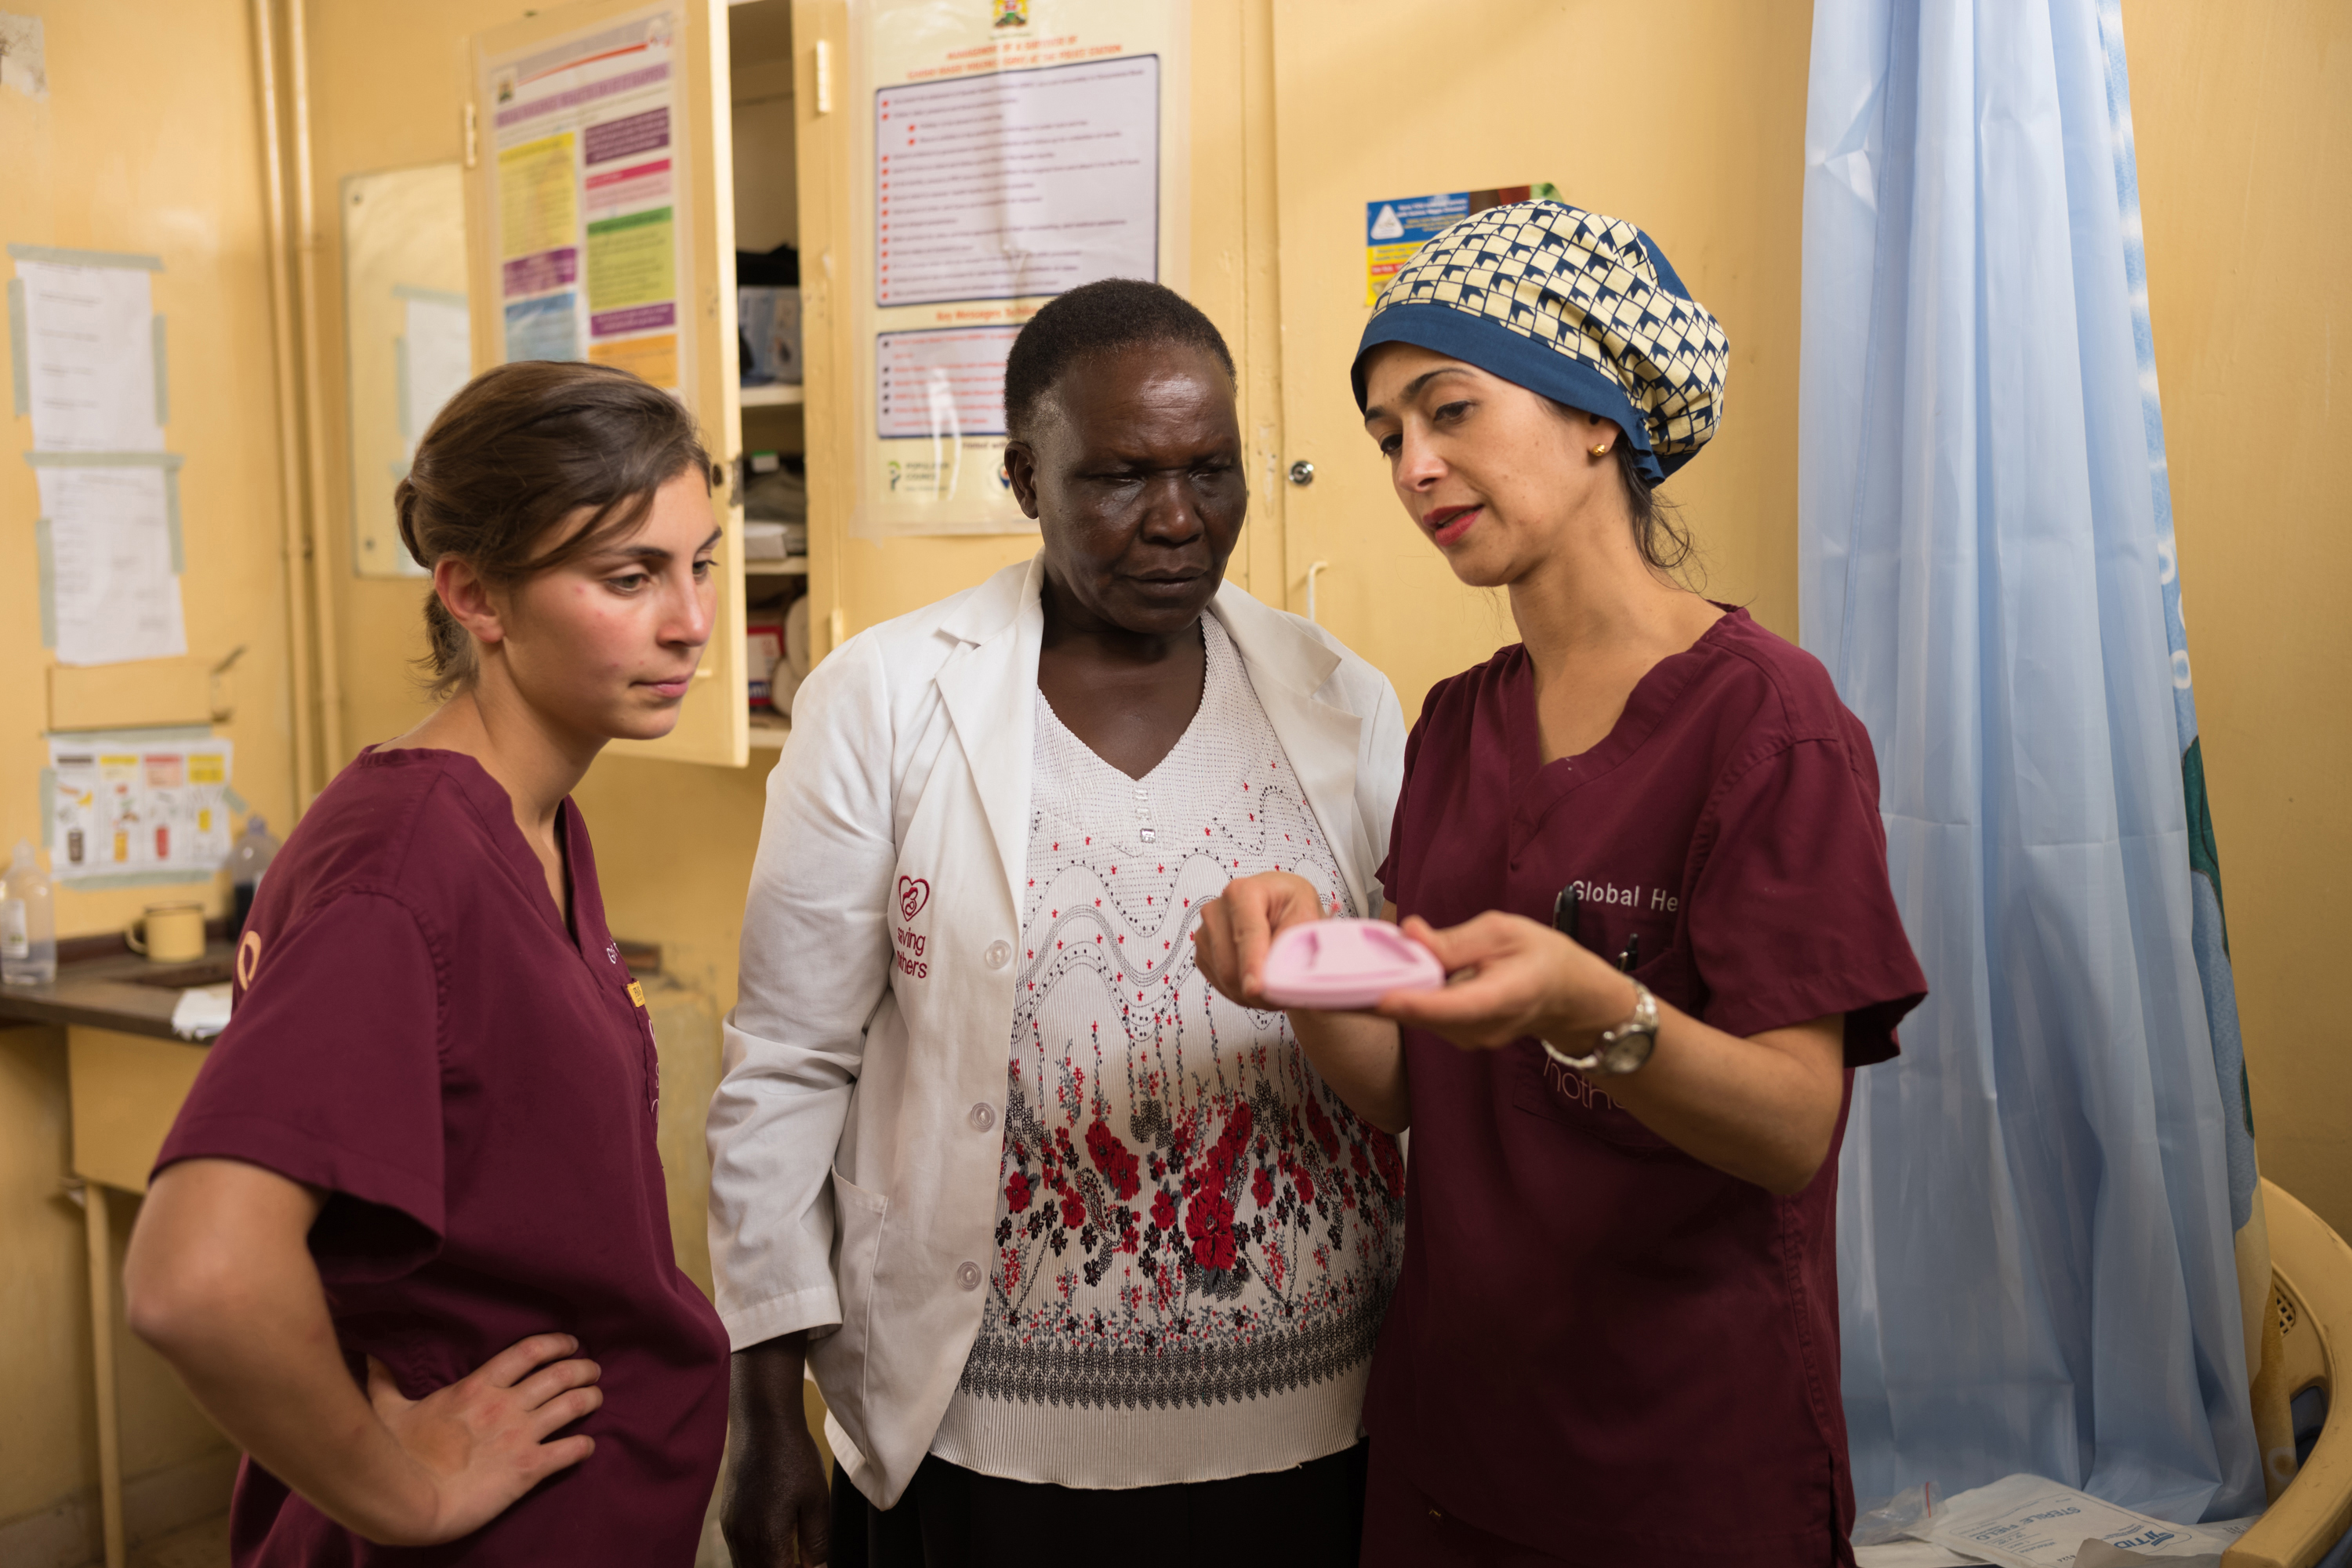 Saving Mothers fellow, Leah Jones, Antonet Kpar, and Dr. Tara Shirazian review the steps to insert an IUD on March 9, 2018 in Kapenguria, Kenya.    Saving Mothers visited West Pokot, Kenya and screened over 300 women and provided many types of surgery include molar pregnancy, ectopic pregnancy, hysterectomy, prolapse and fistula.